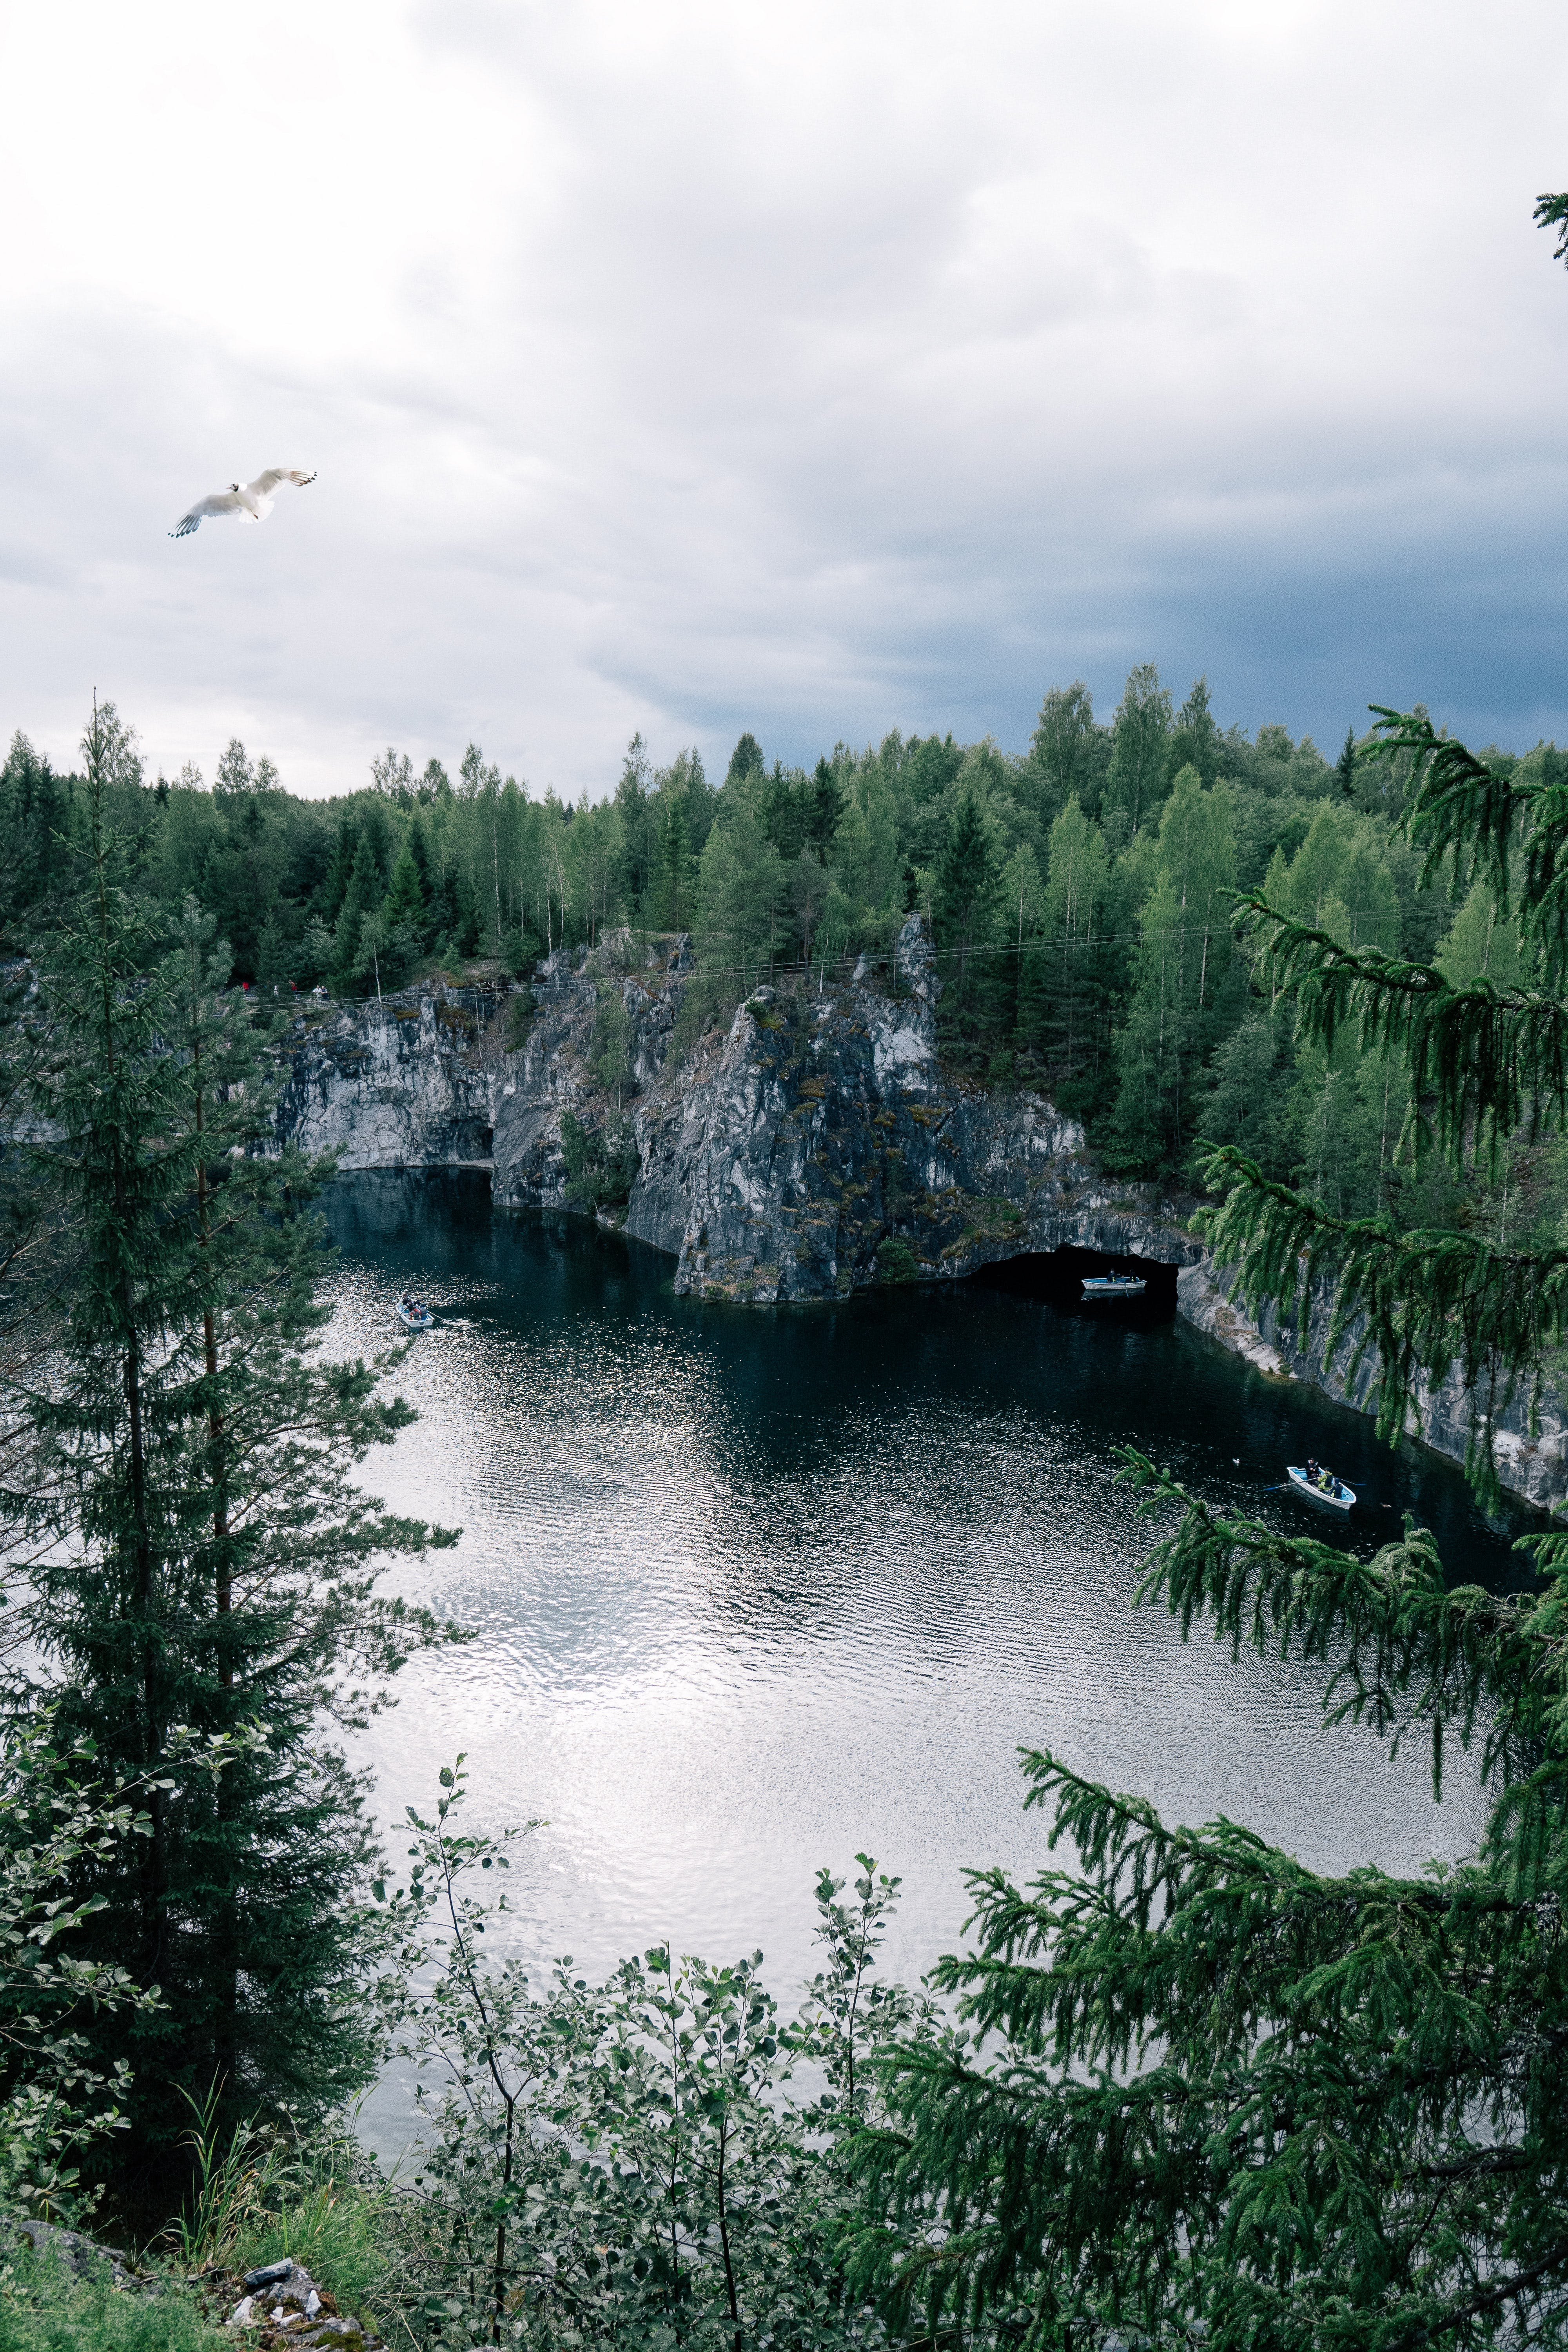 Birds Eye Photography of Body of Water Between Tall Trees